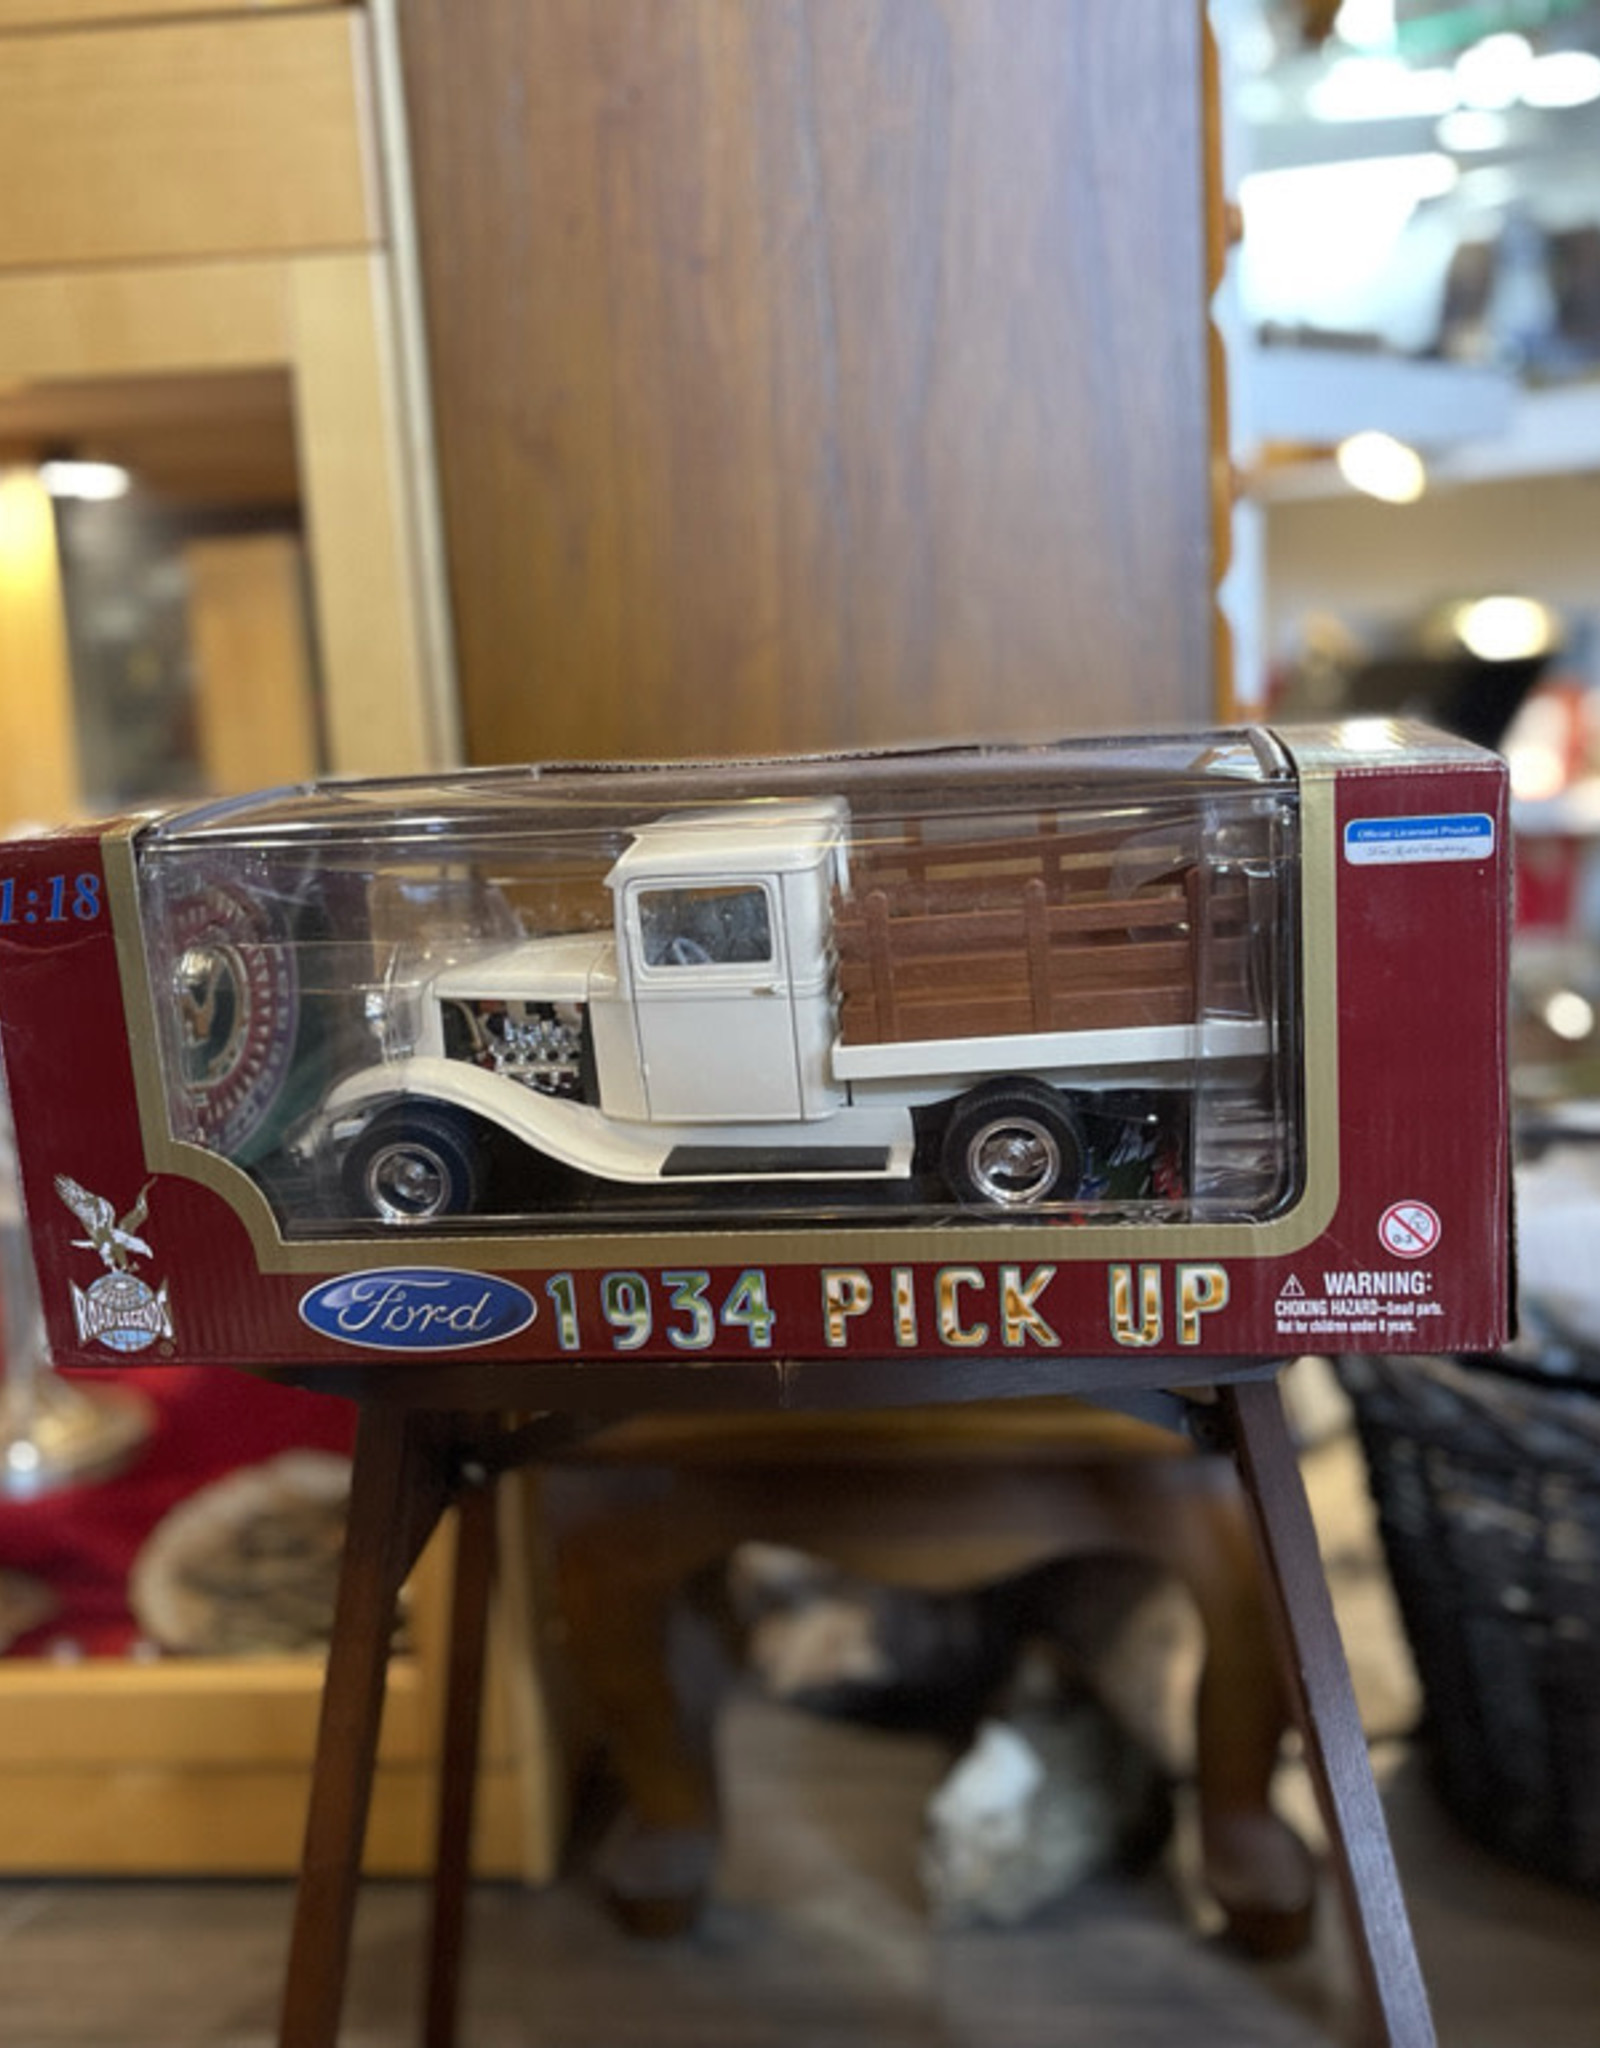 DieCast Car 1934 Ford Pick Up